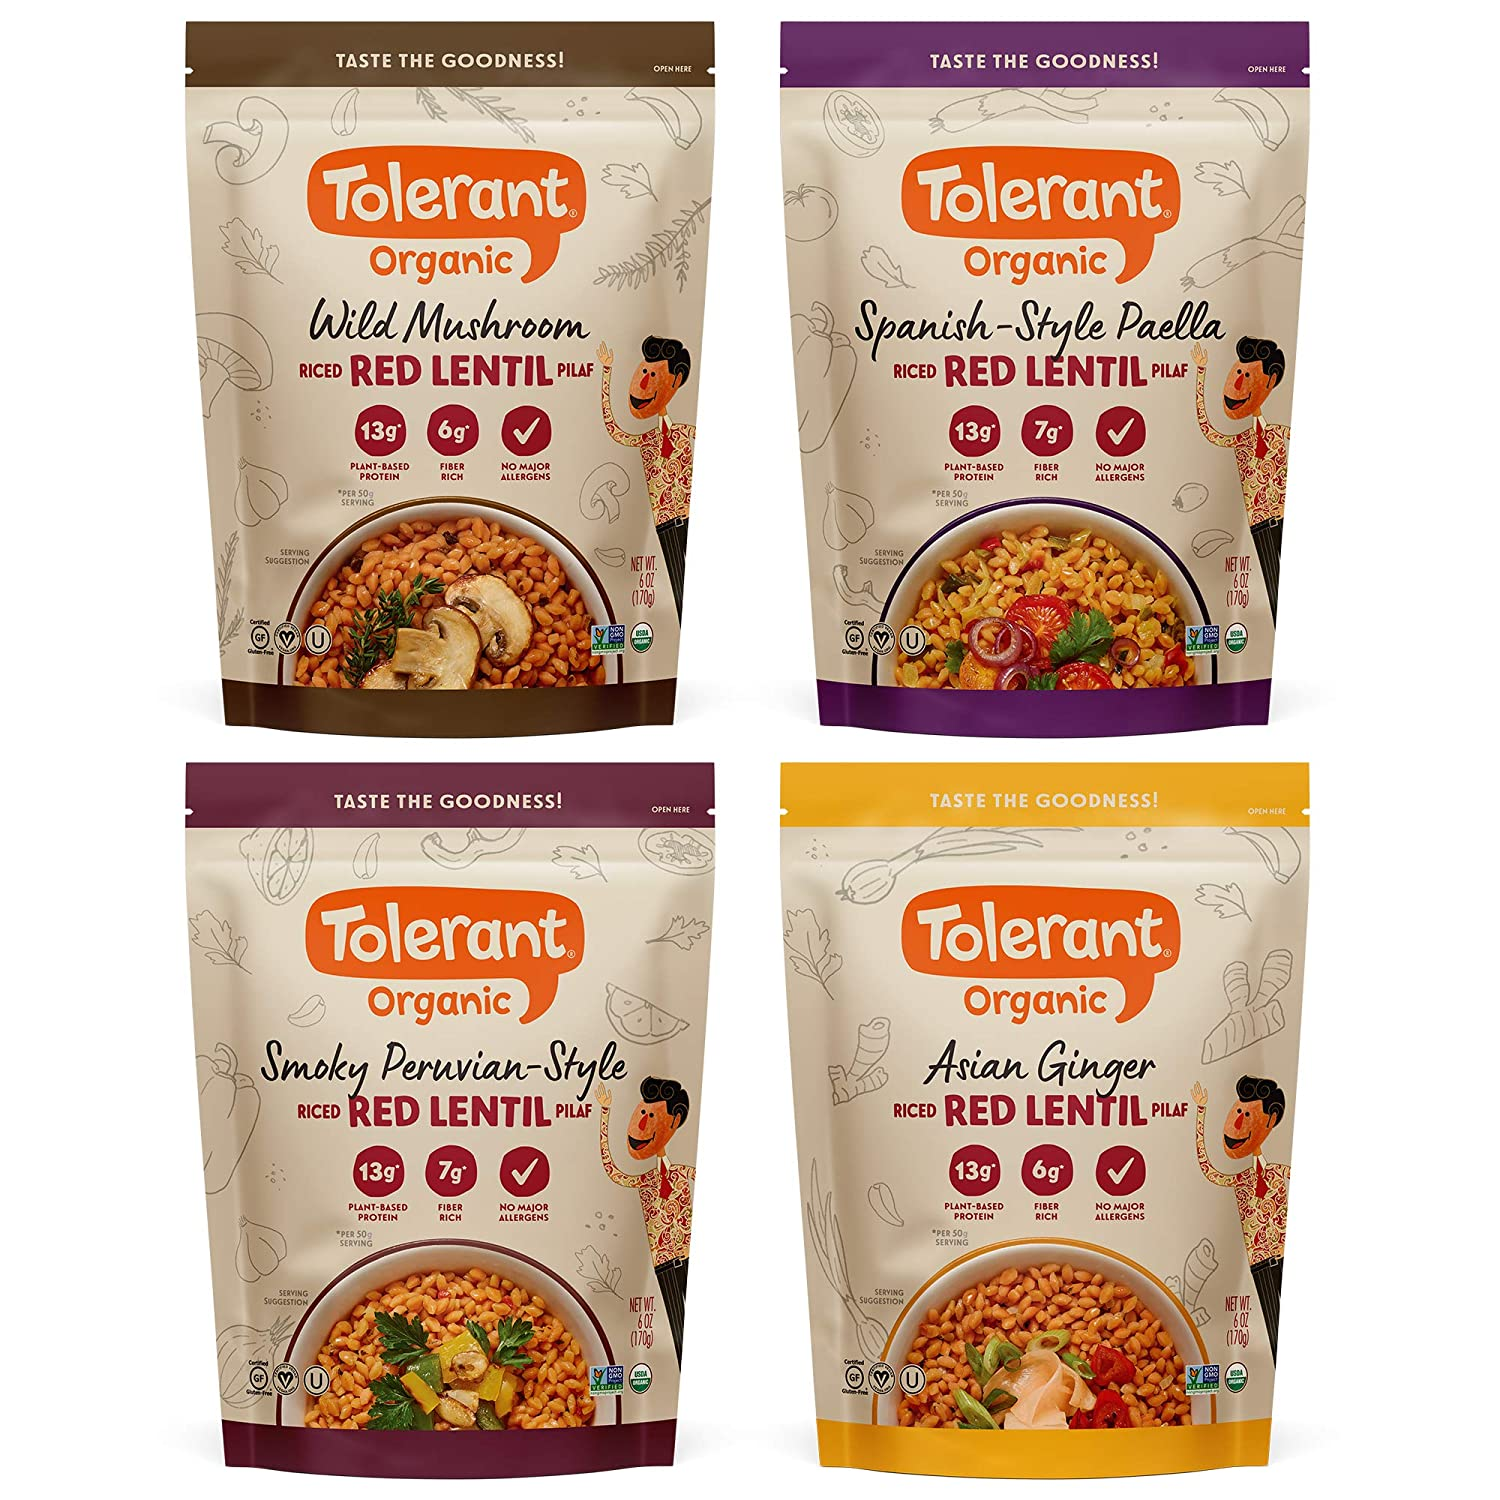 Tolerant Organic Variety Pack Red Lentil Pilaf - 6 oz Pouches (Case of 4), Plant-Based Protein, Gluten-Free, Vegan, Non-GMO, Organic, Clean Eating, Kosher